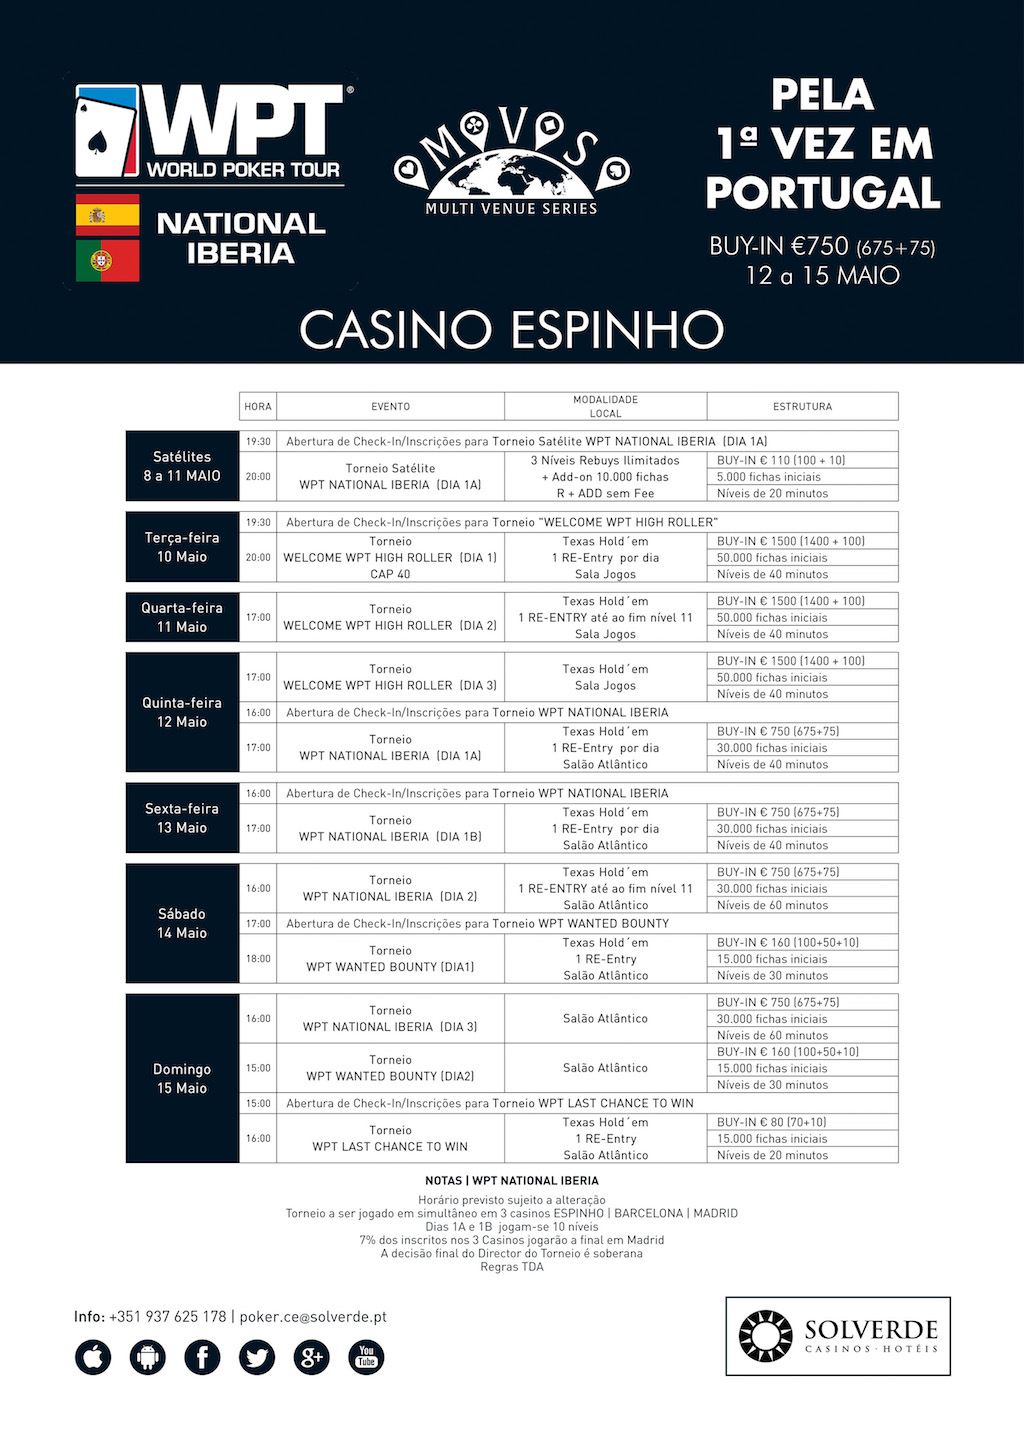 Dia 1A Main Event WPT National Iberia Arranca às 17:00 no Casino de Espinho 101